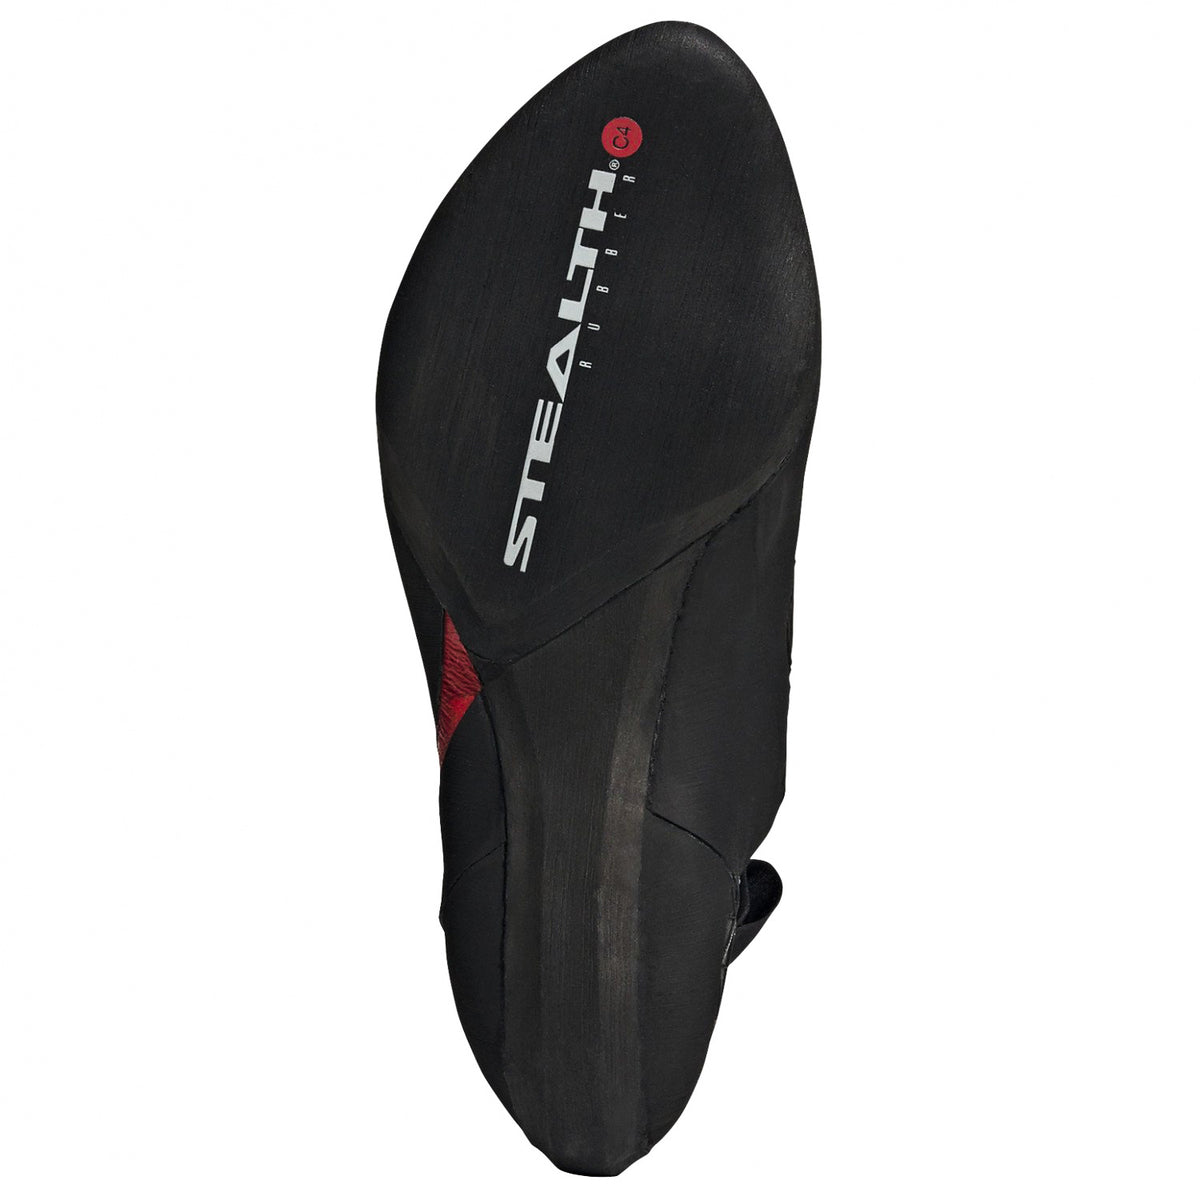 Five Ten Aleon climbing shoe, view of the sole